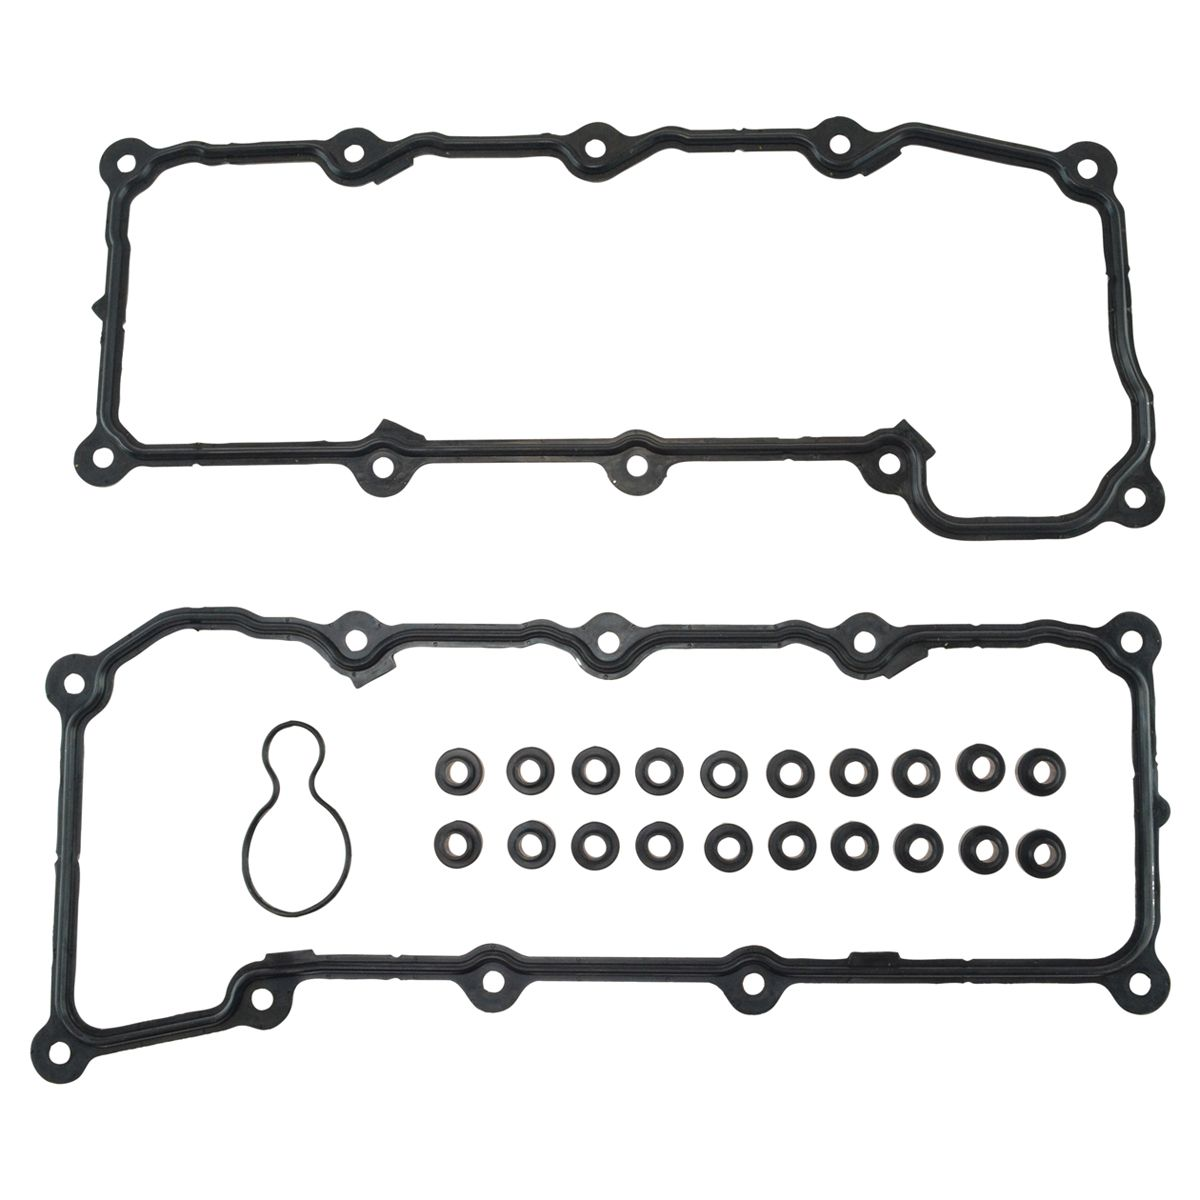 Valve Cover Gasket Set For Dakota Durango Ram Liberty